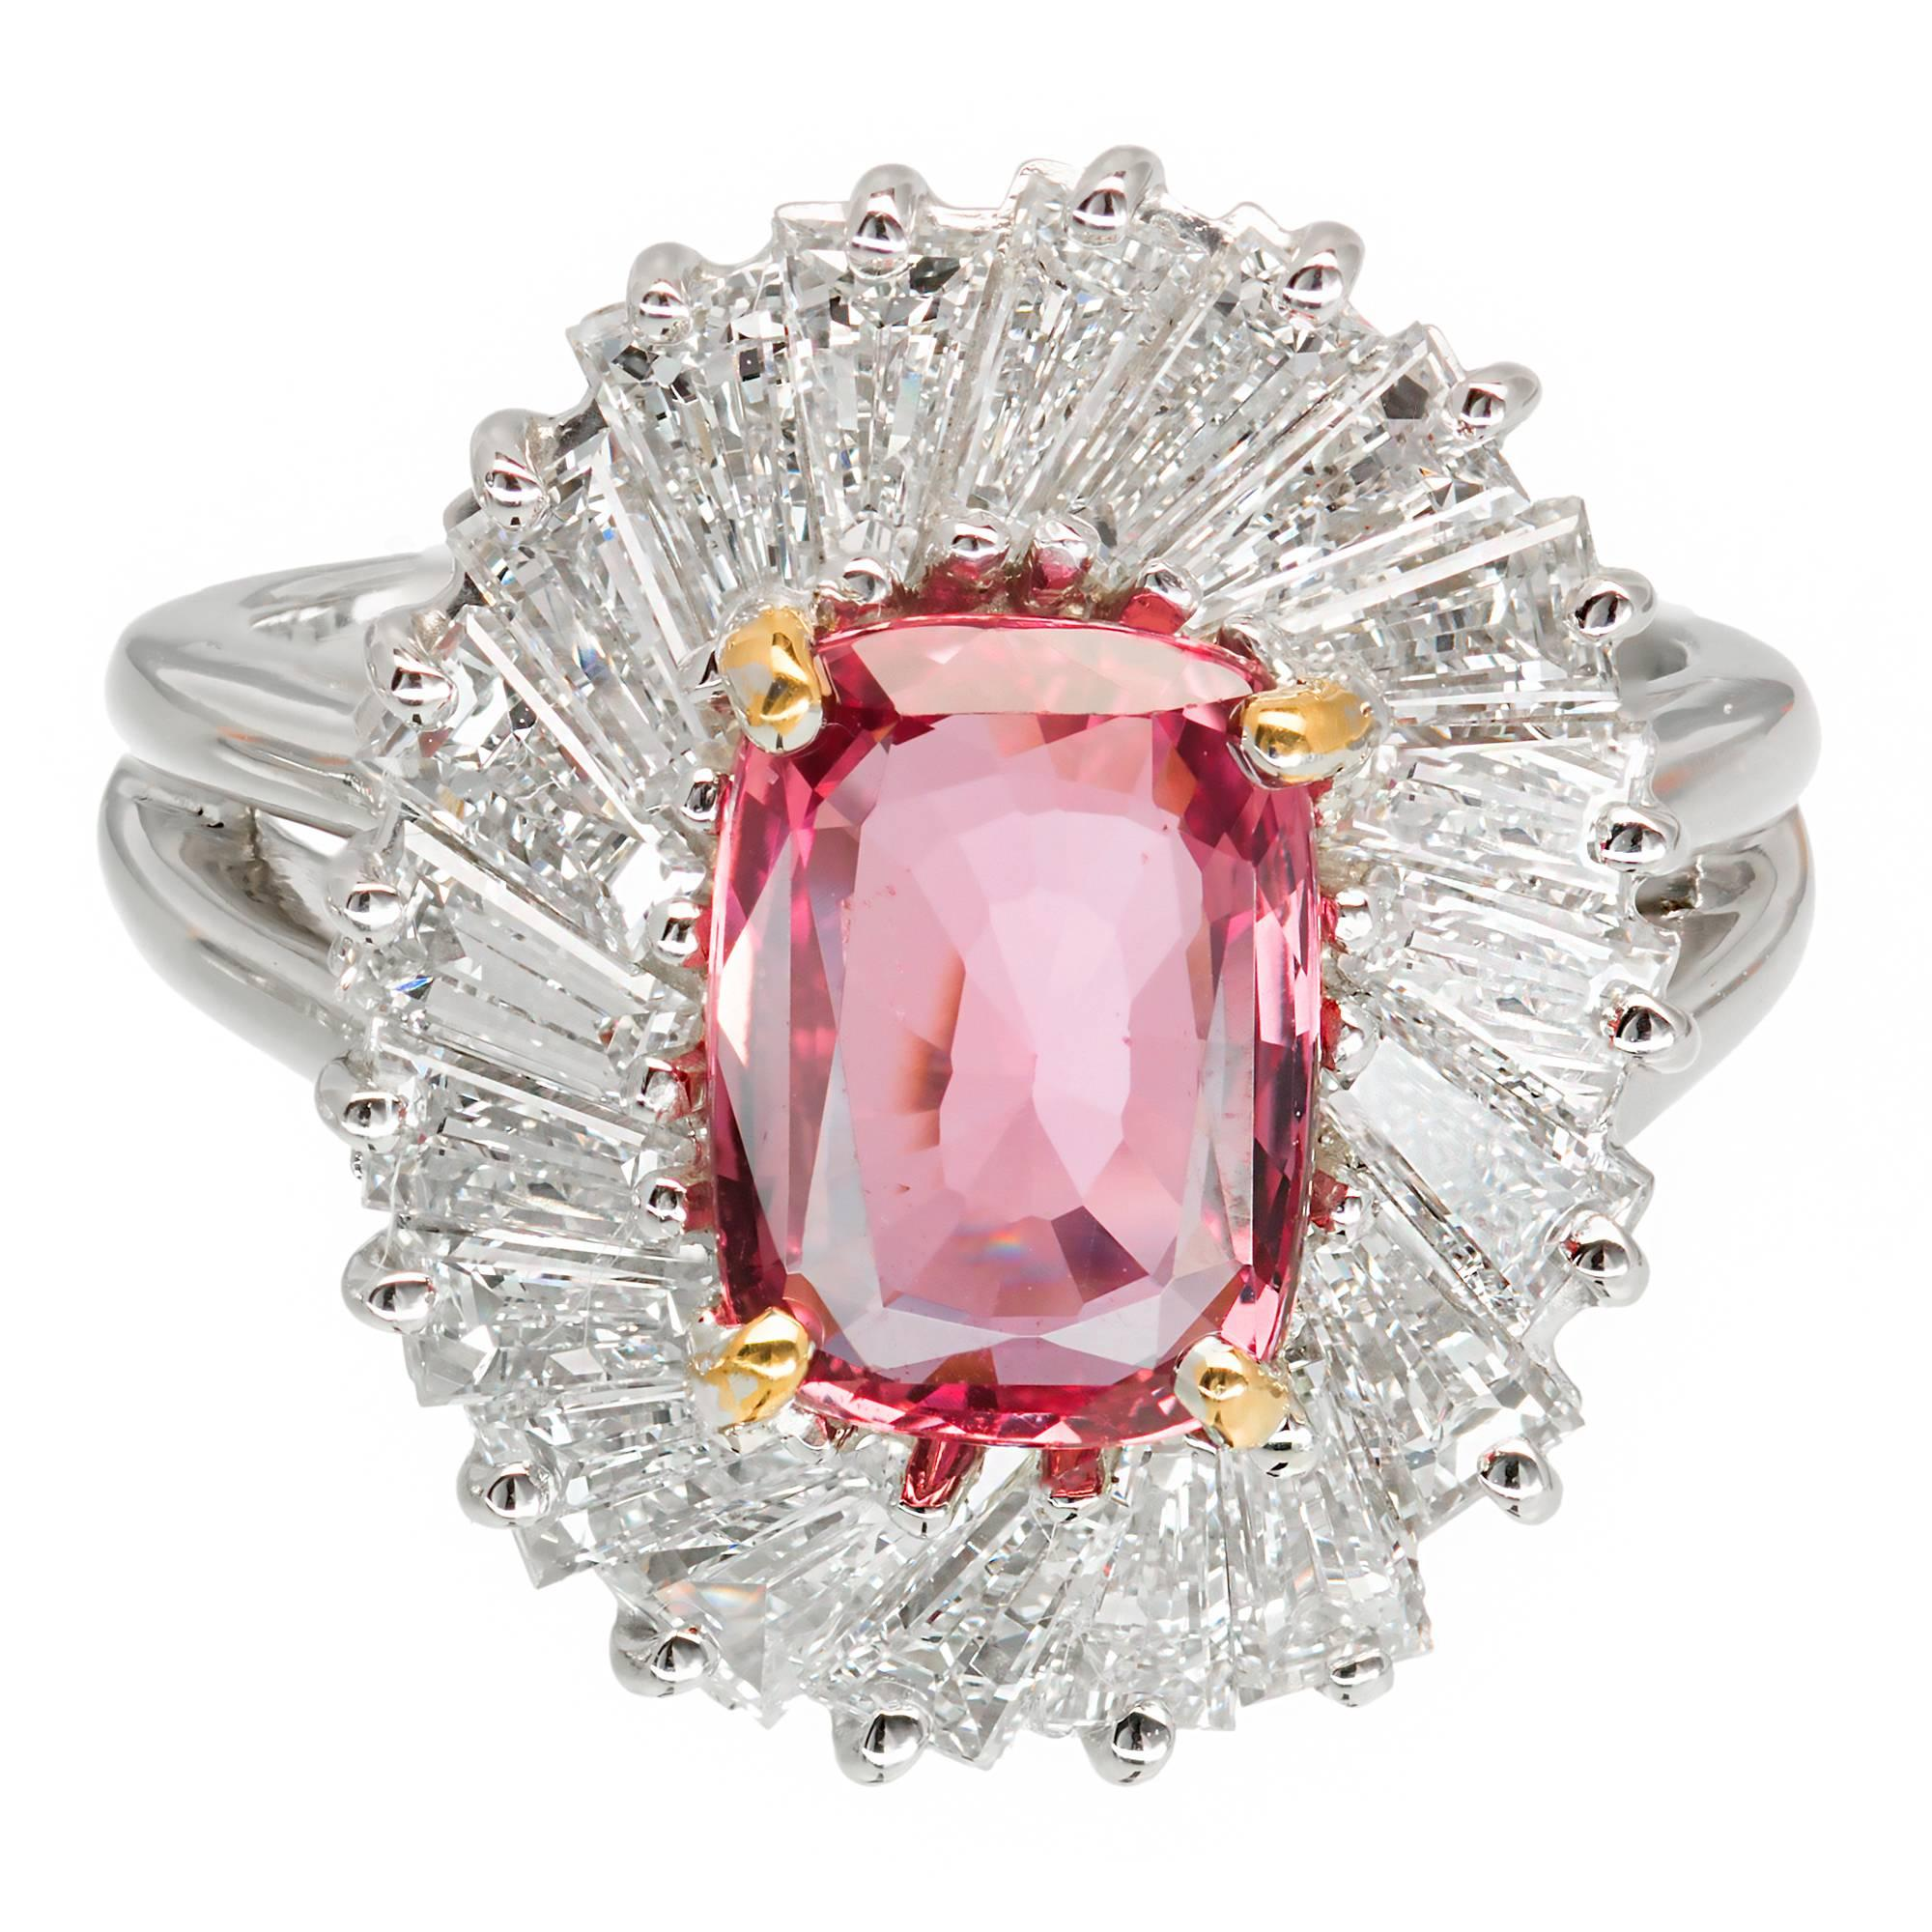 jewelry morganite rose miadora watches diamond product ring stone gold overstock today shipping free pink tourmaline and engagement rings